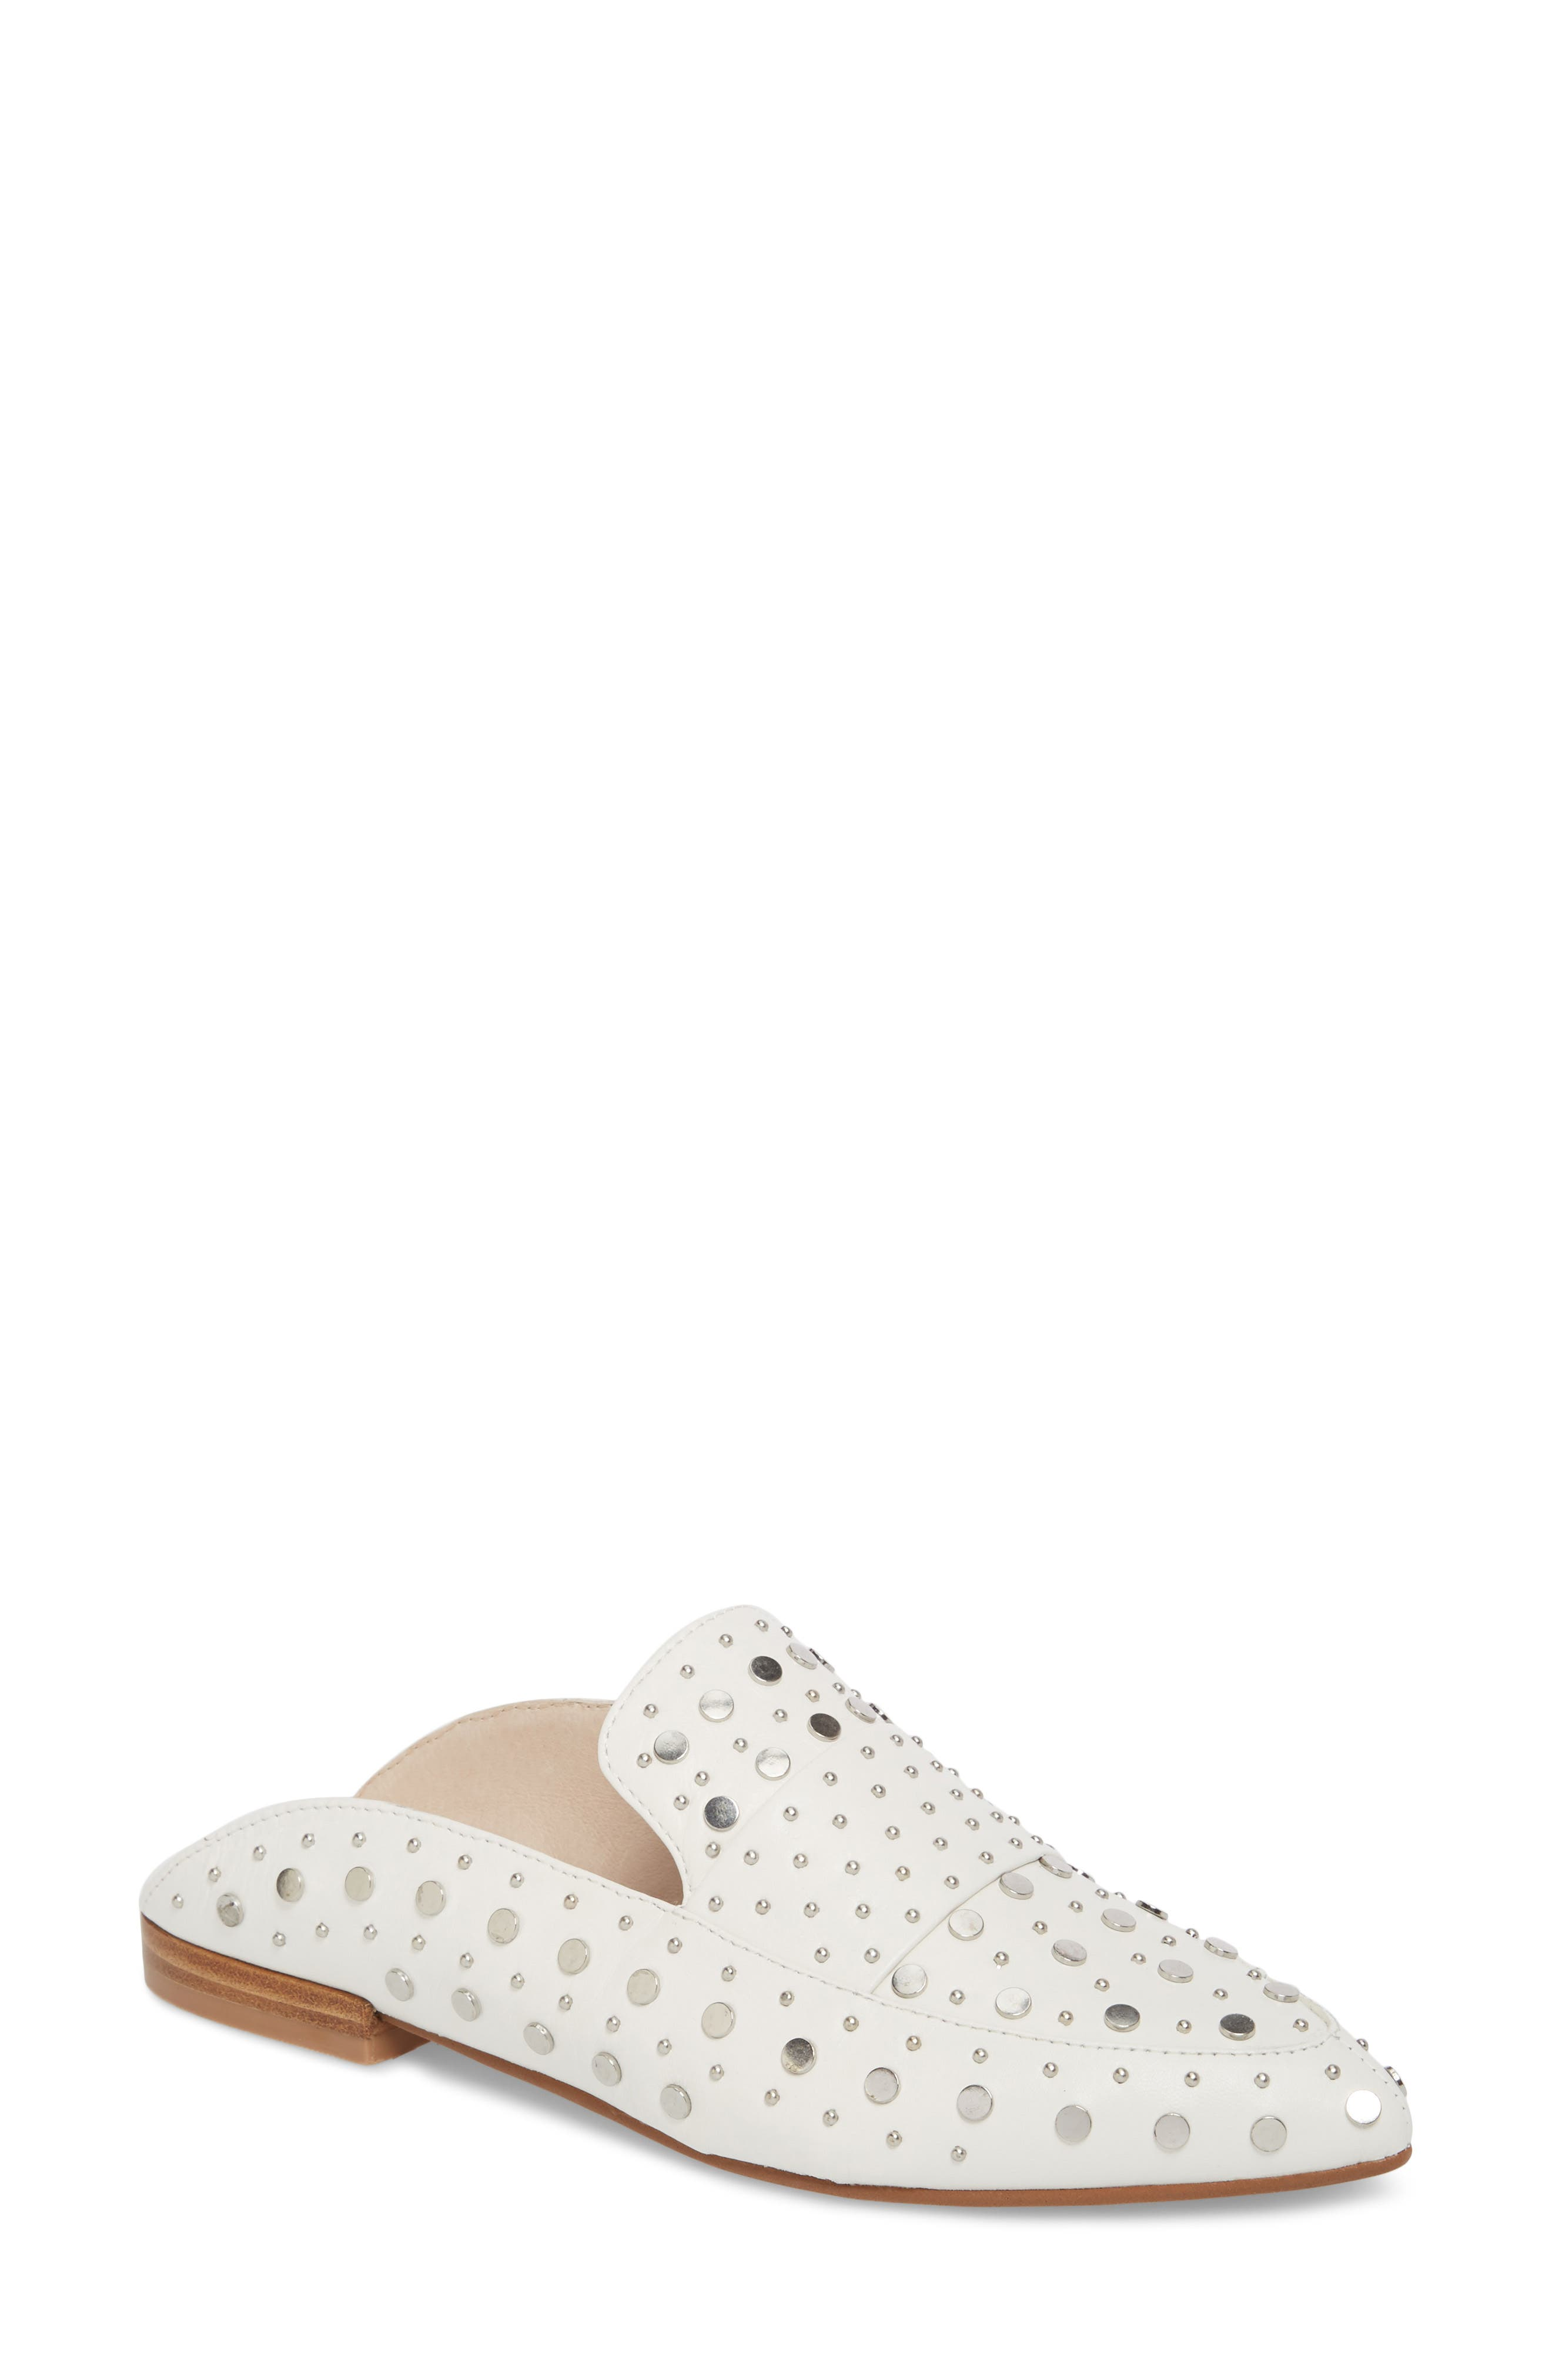 Charlie Studded Loafer Mule,                             Main thumbnail 1, color,                             WHITE LEATHER